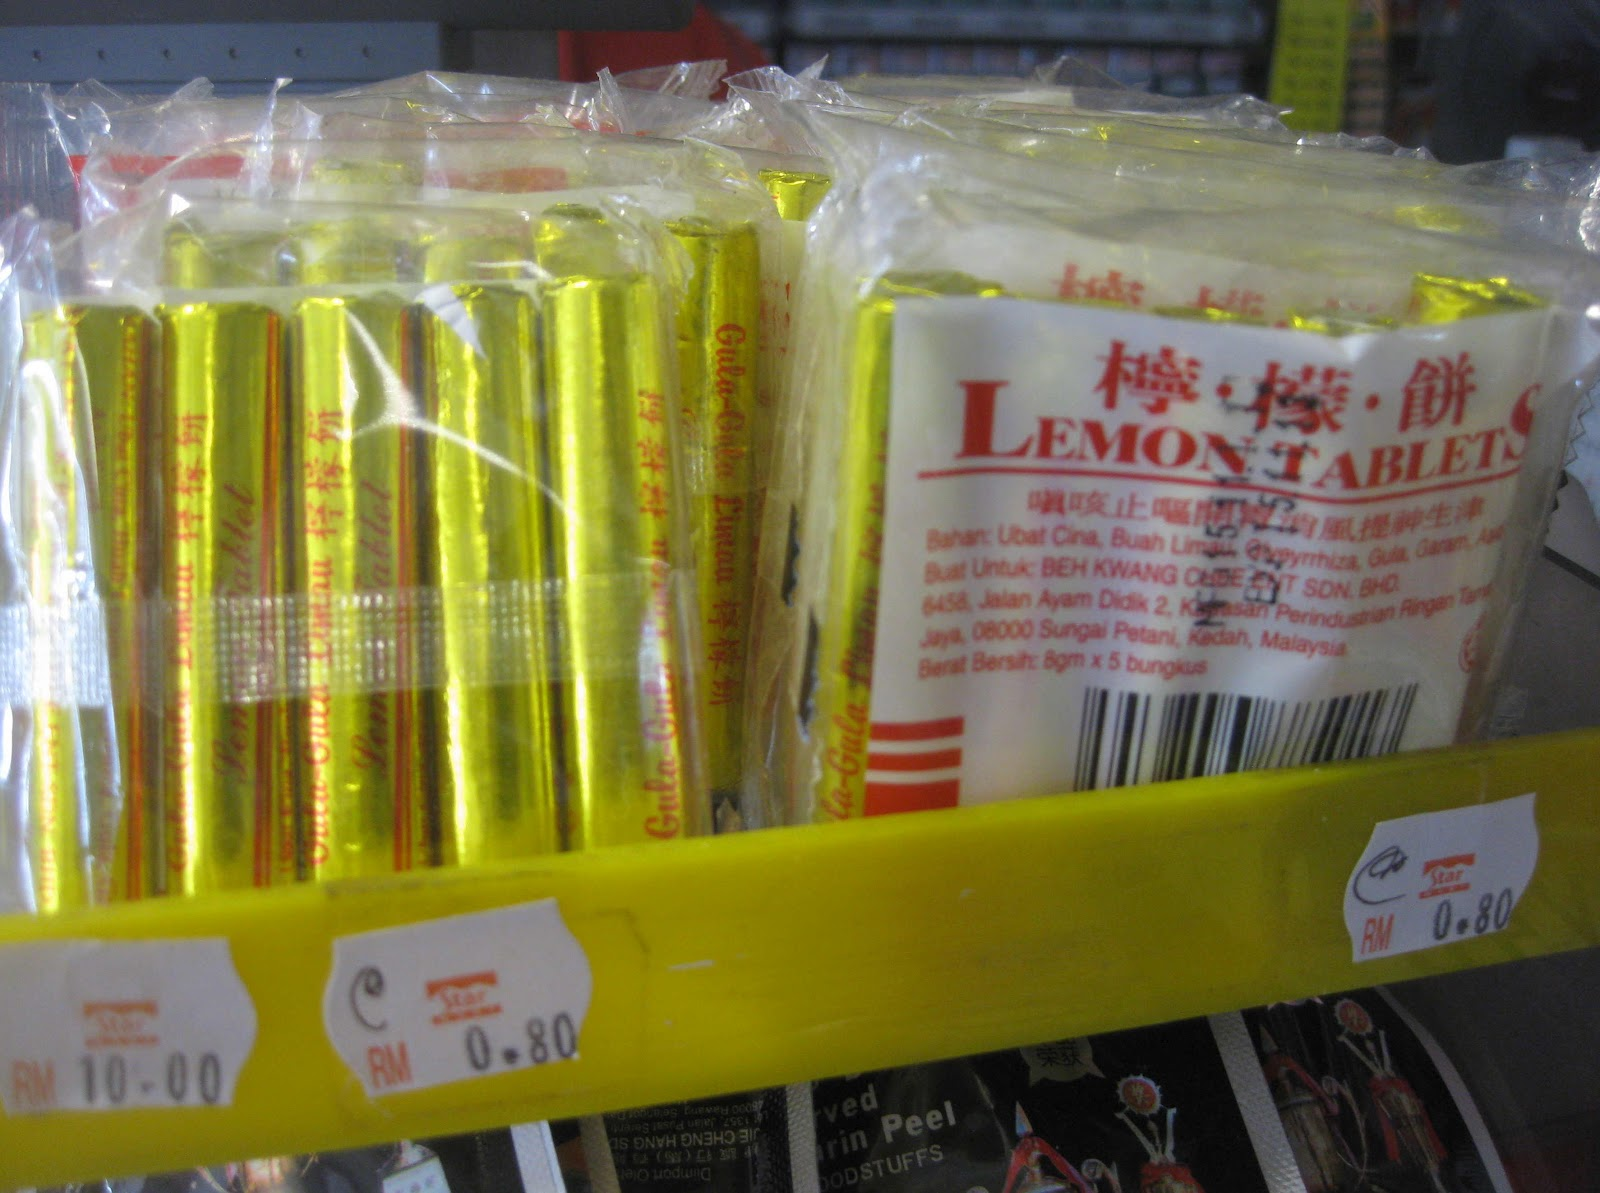 Lemon Tablets